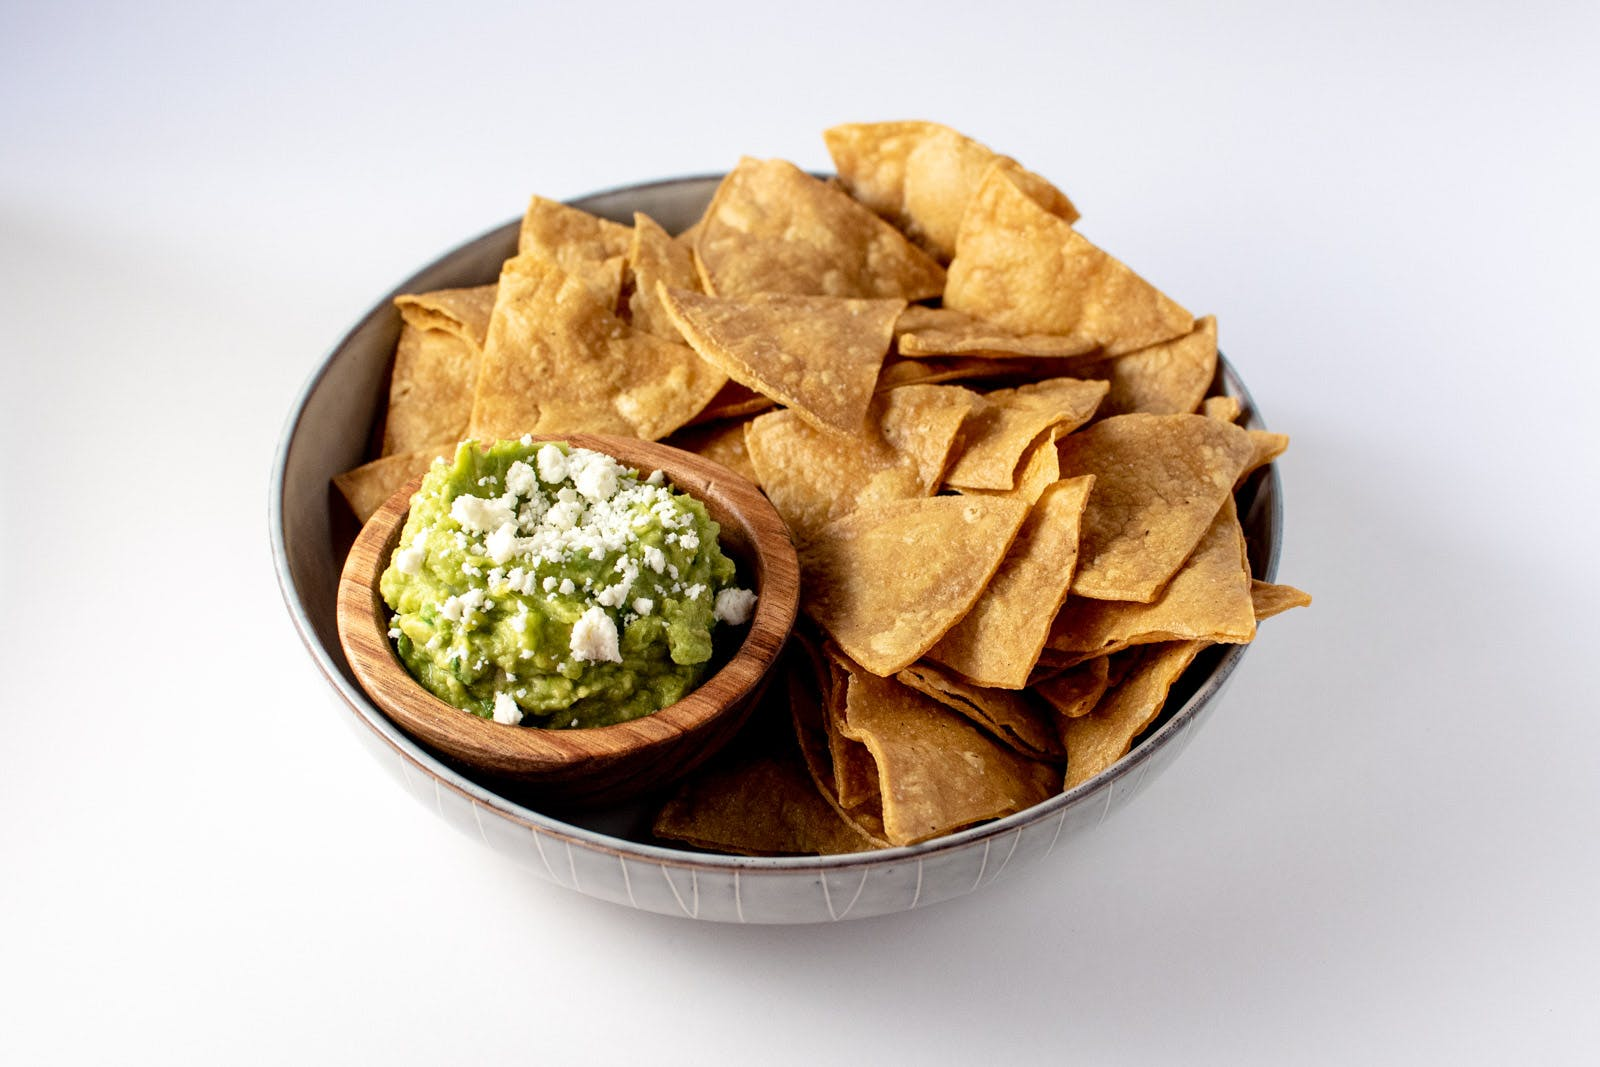 Yellow Corn Tortilla Chips and Guacamole from Taco Royale - Eastside Madison in Madison, WI